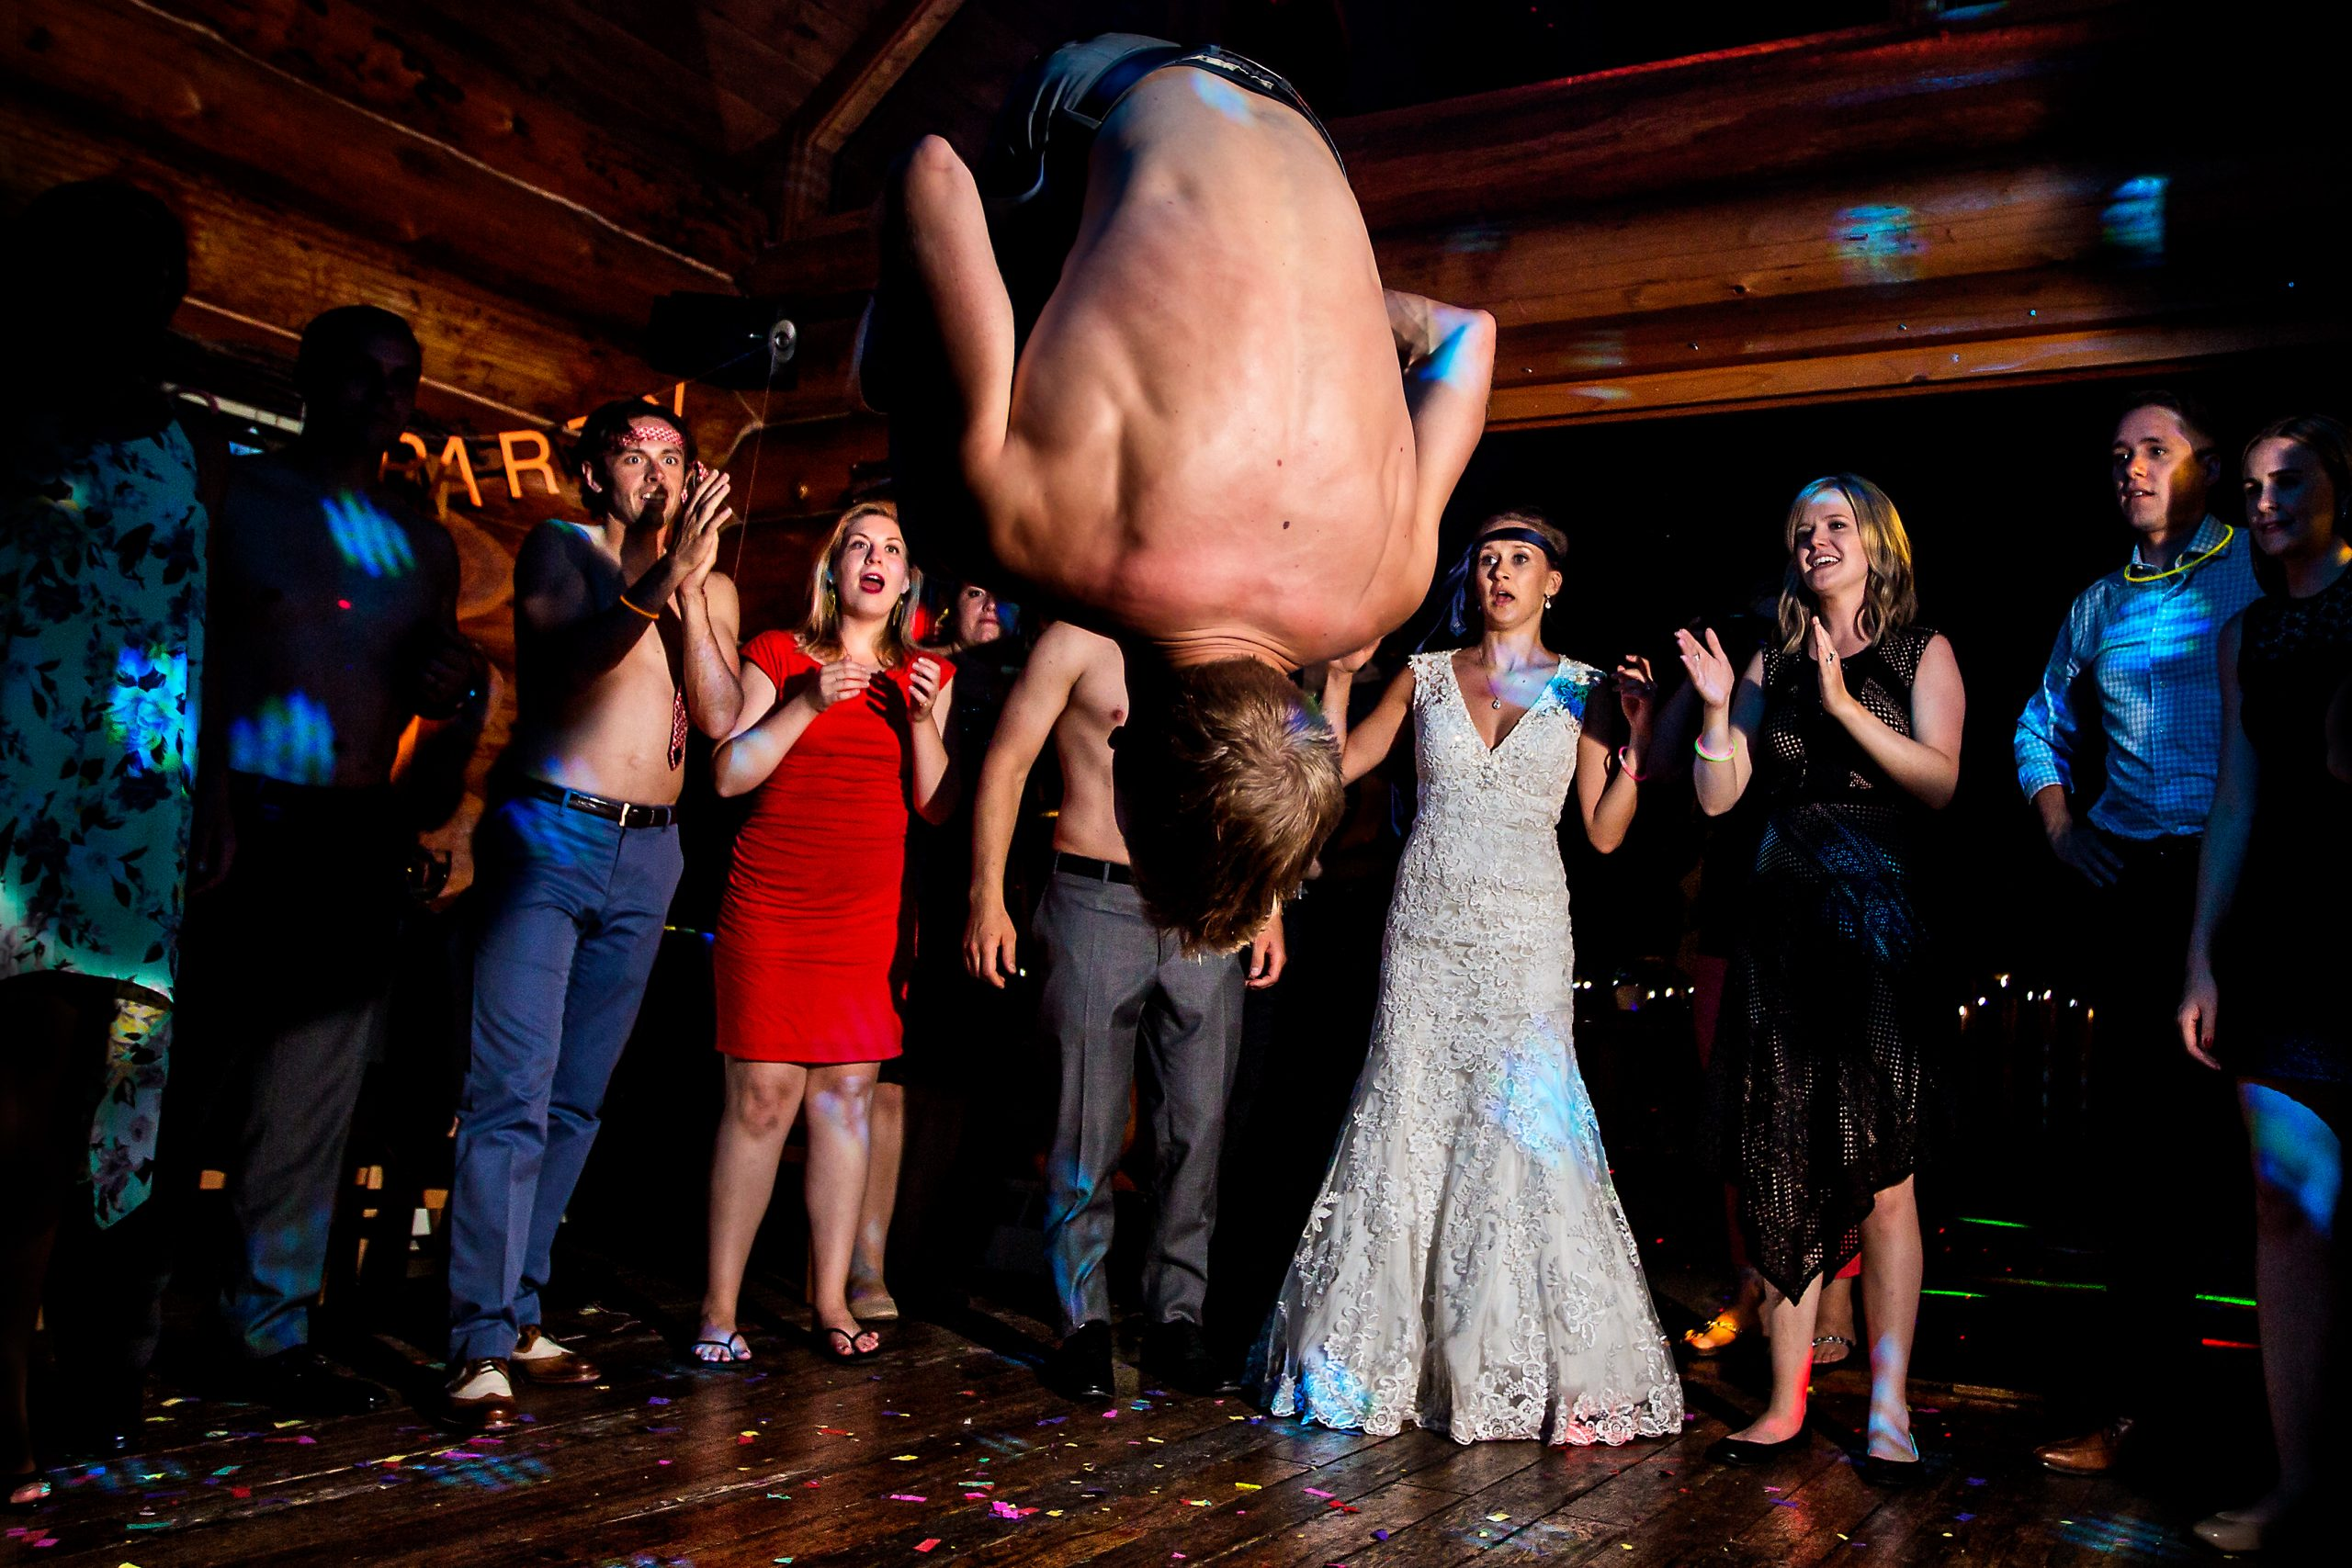 Man performs front flip in front of impressed guests